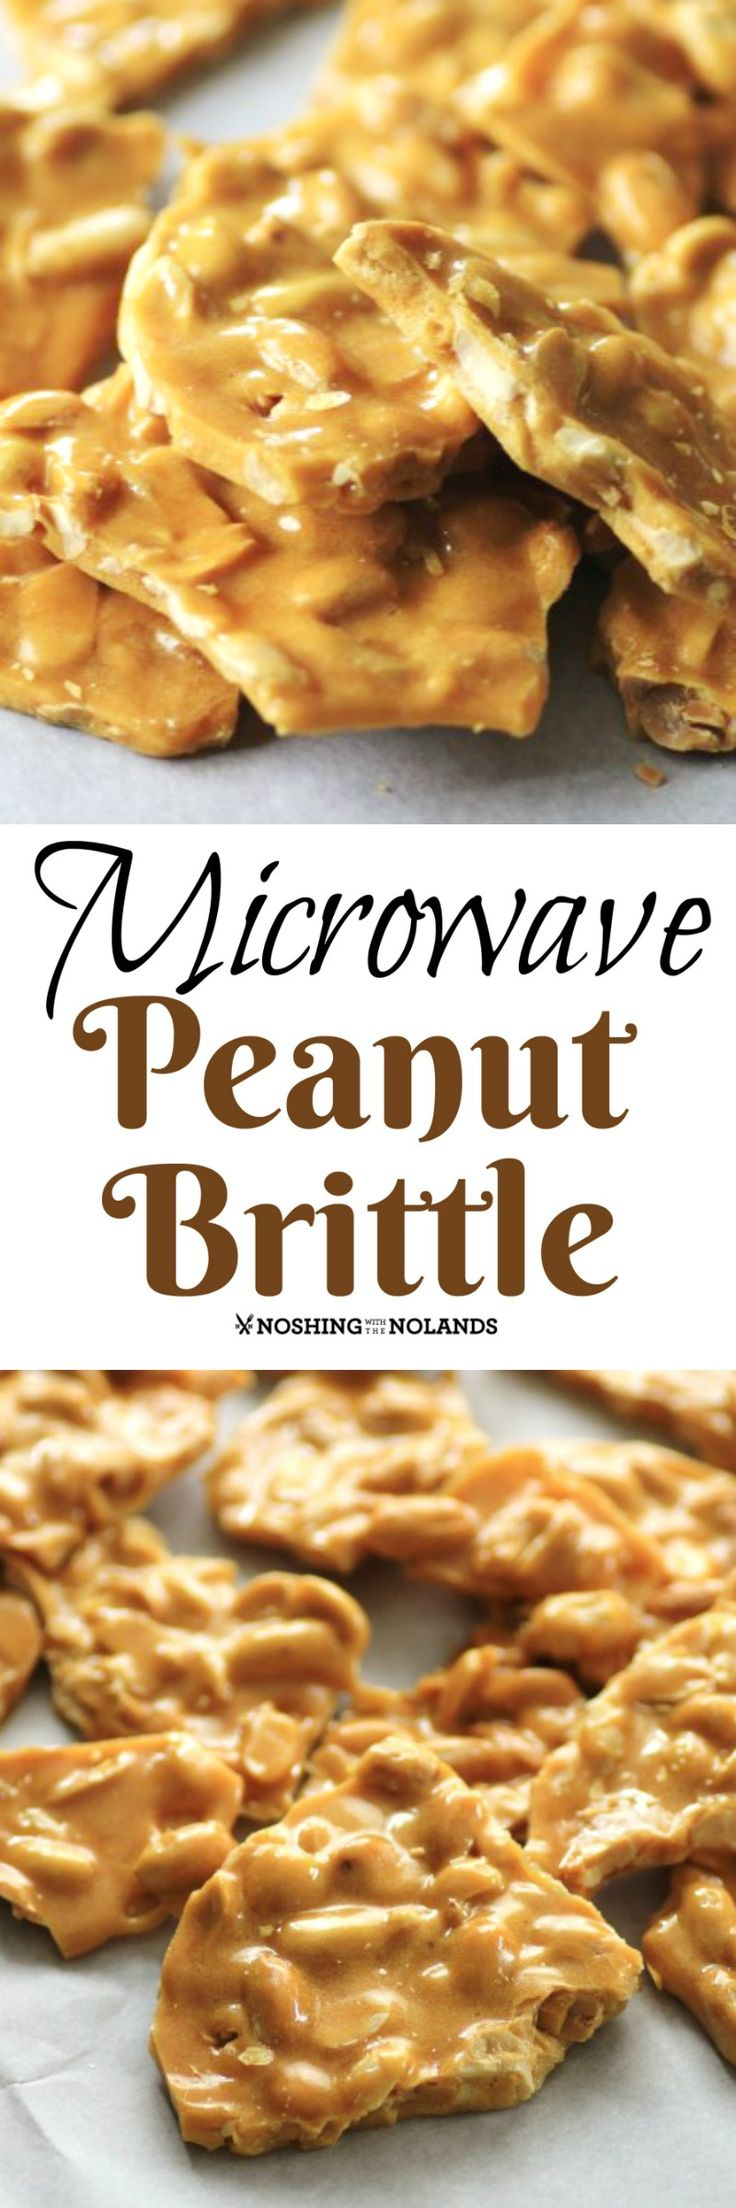 Microwave Peanut Brittle by Noshing With The Nolands is a fun and easy treat to enjoy and give over the holidays!